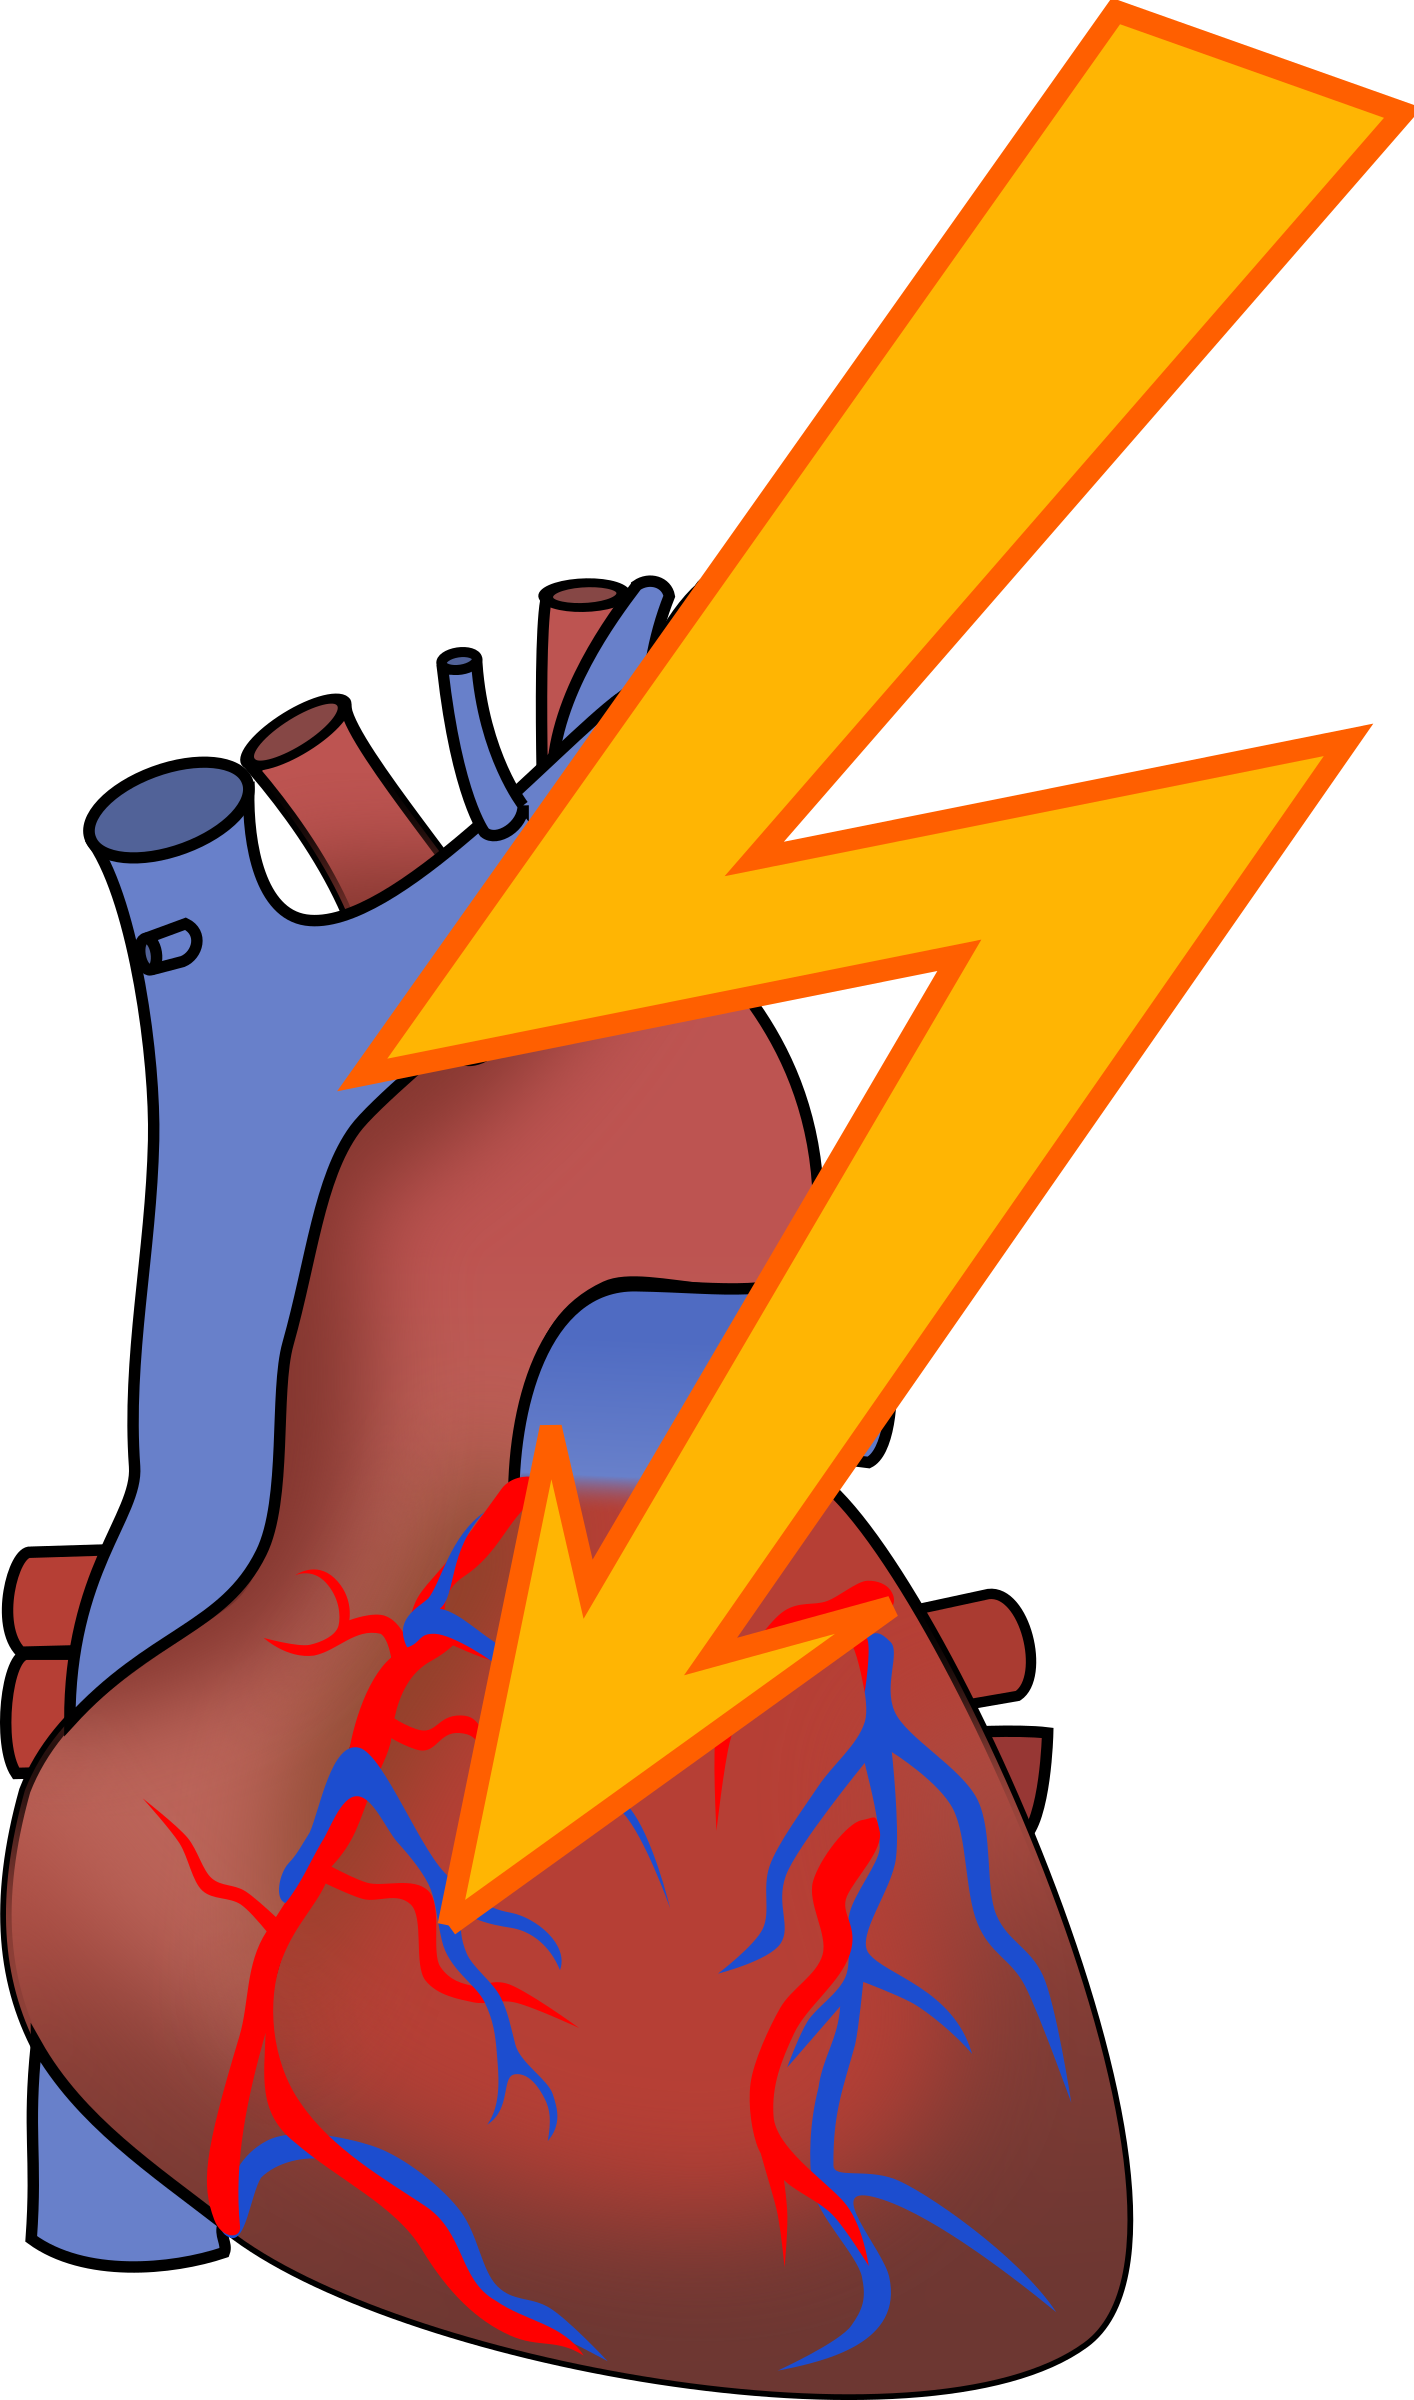 Attack big image png. Exercising clipart heart